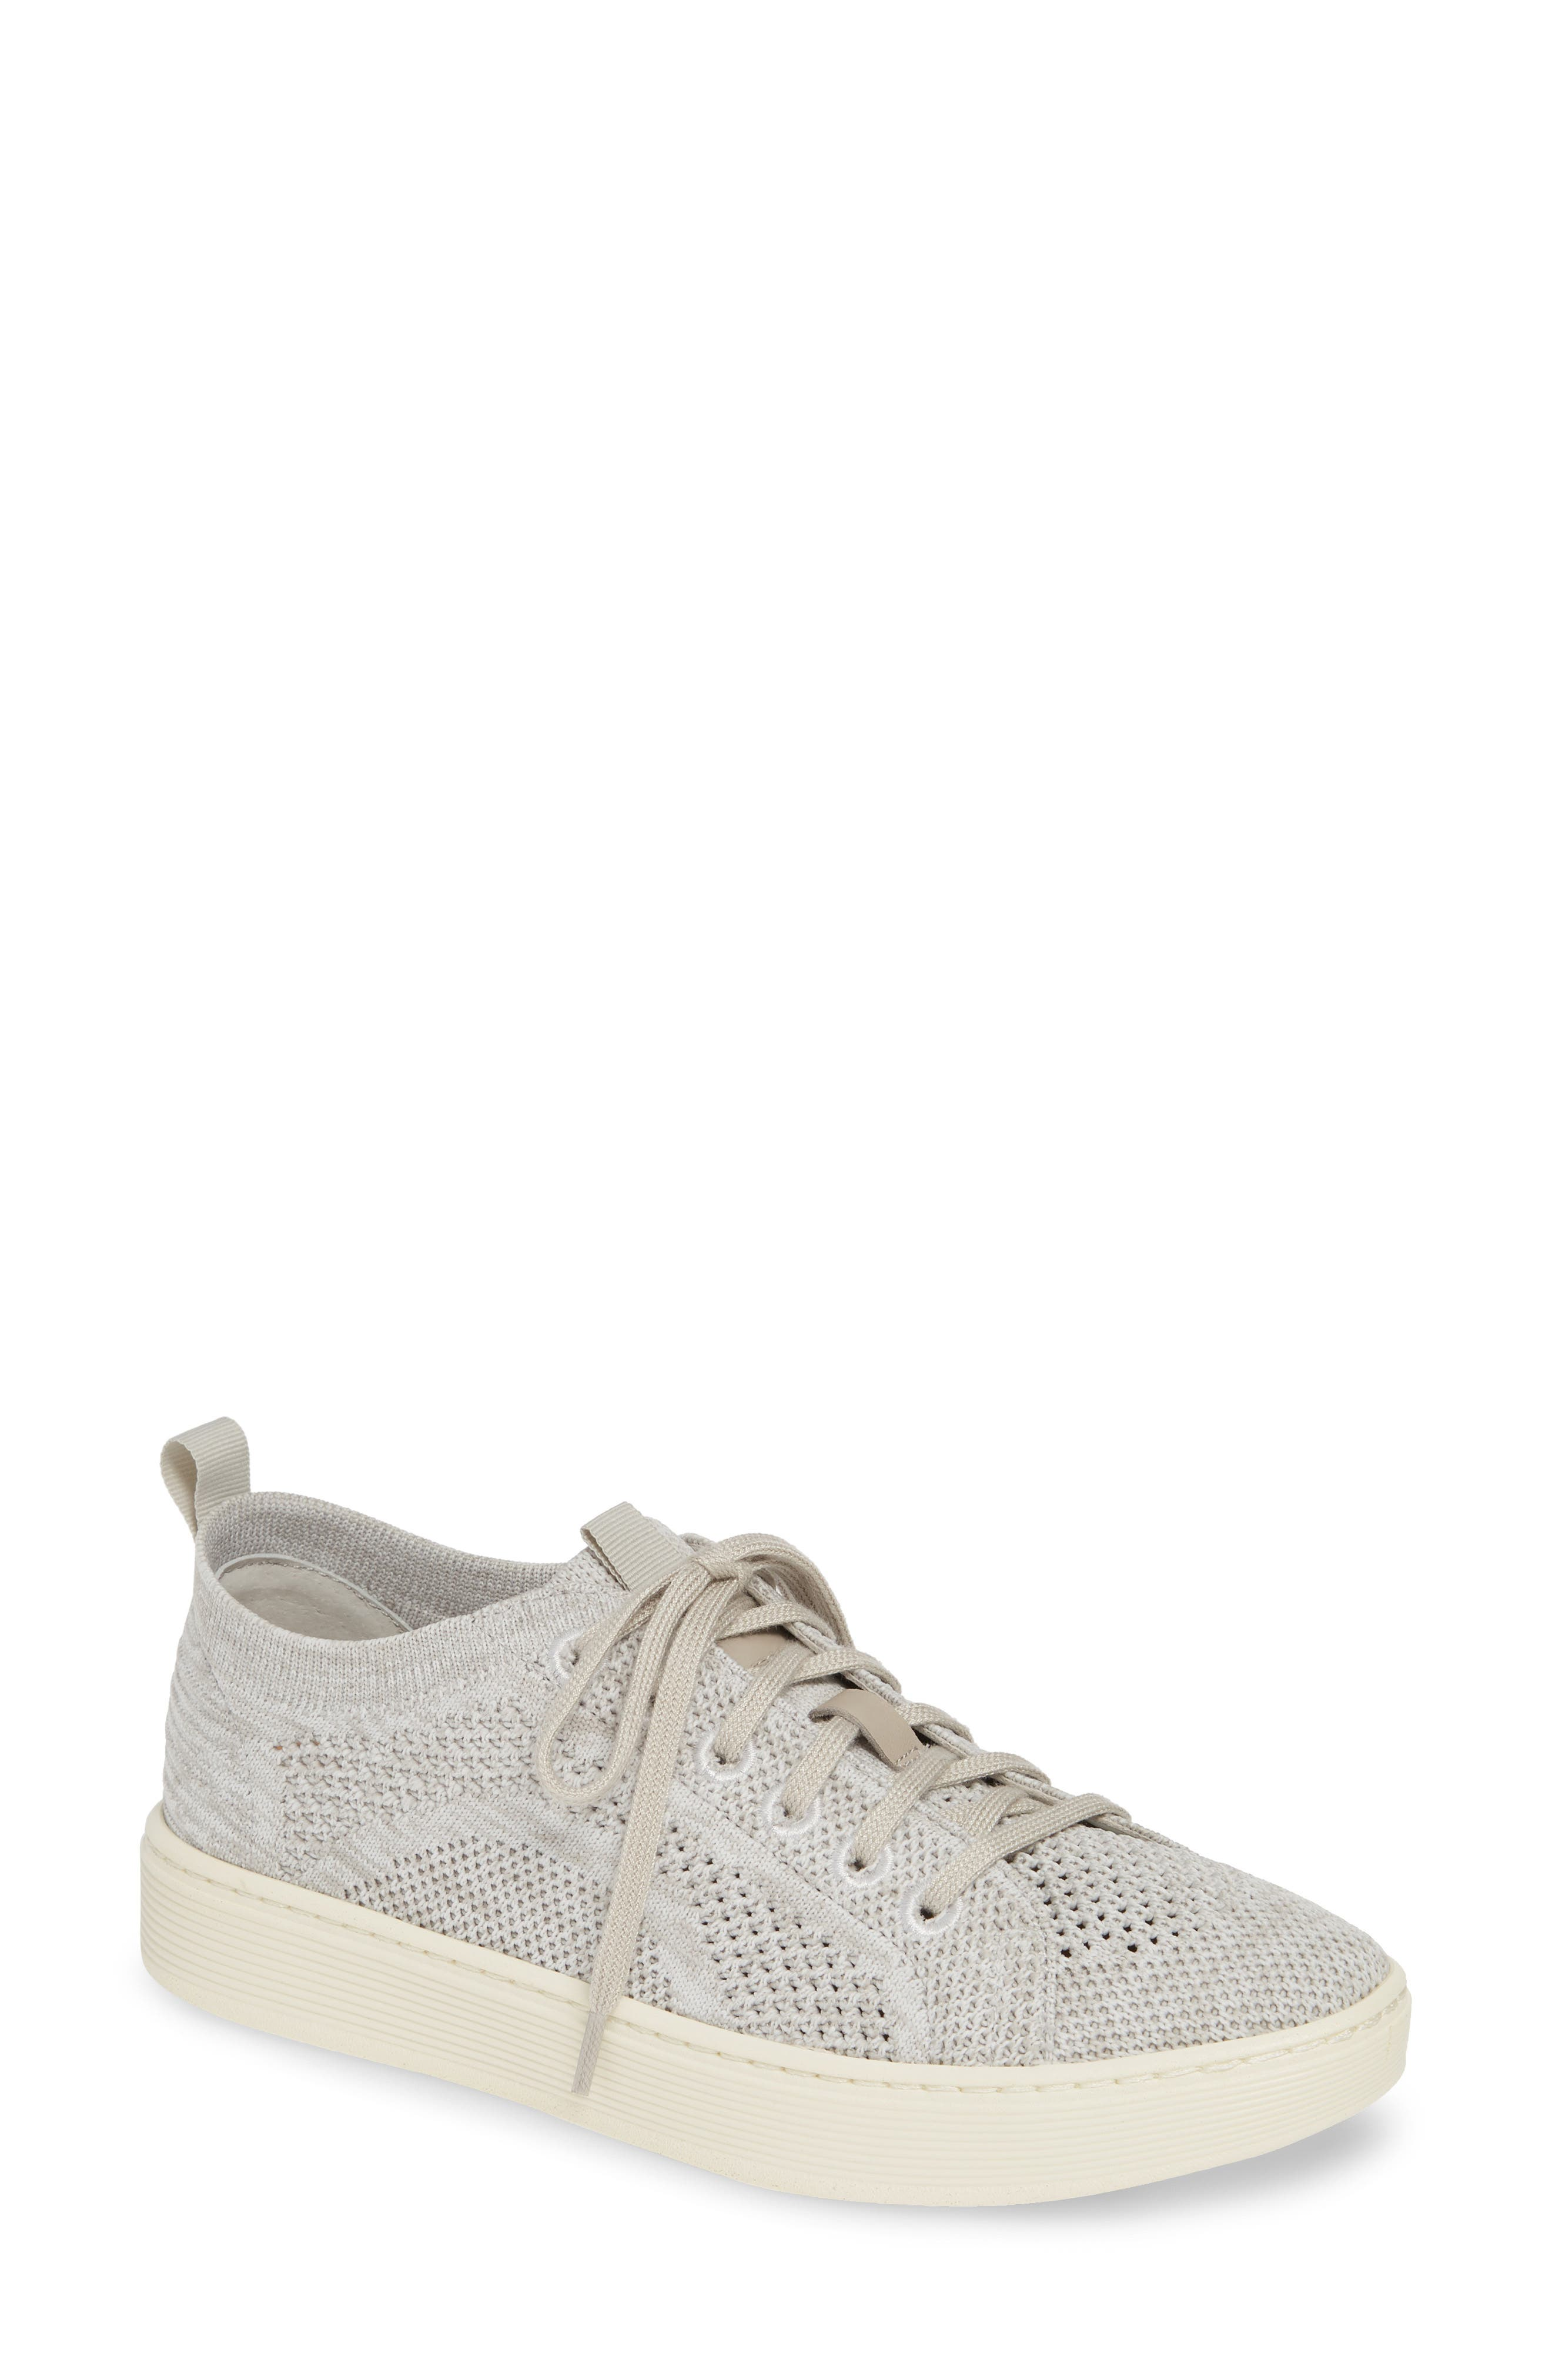 Sofft Somers Knit Sneaker- Grey